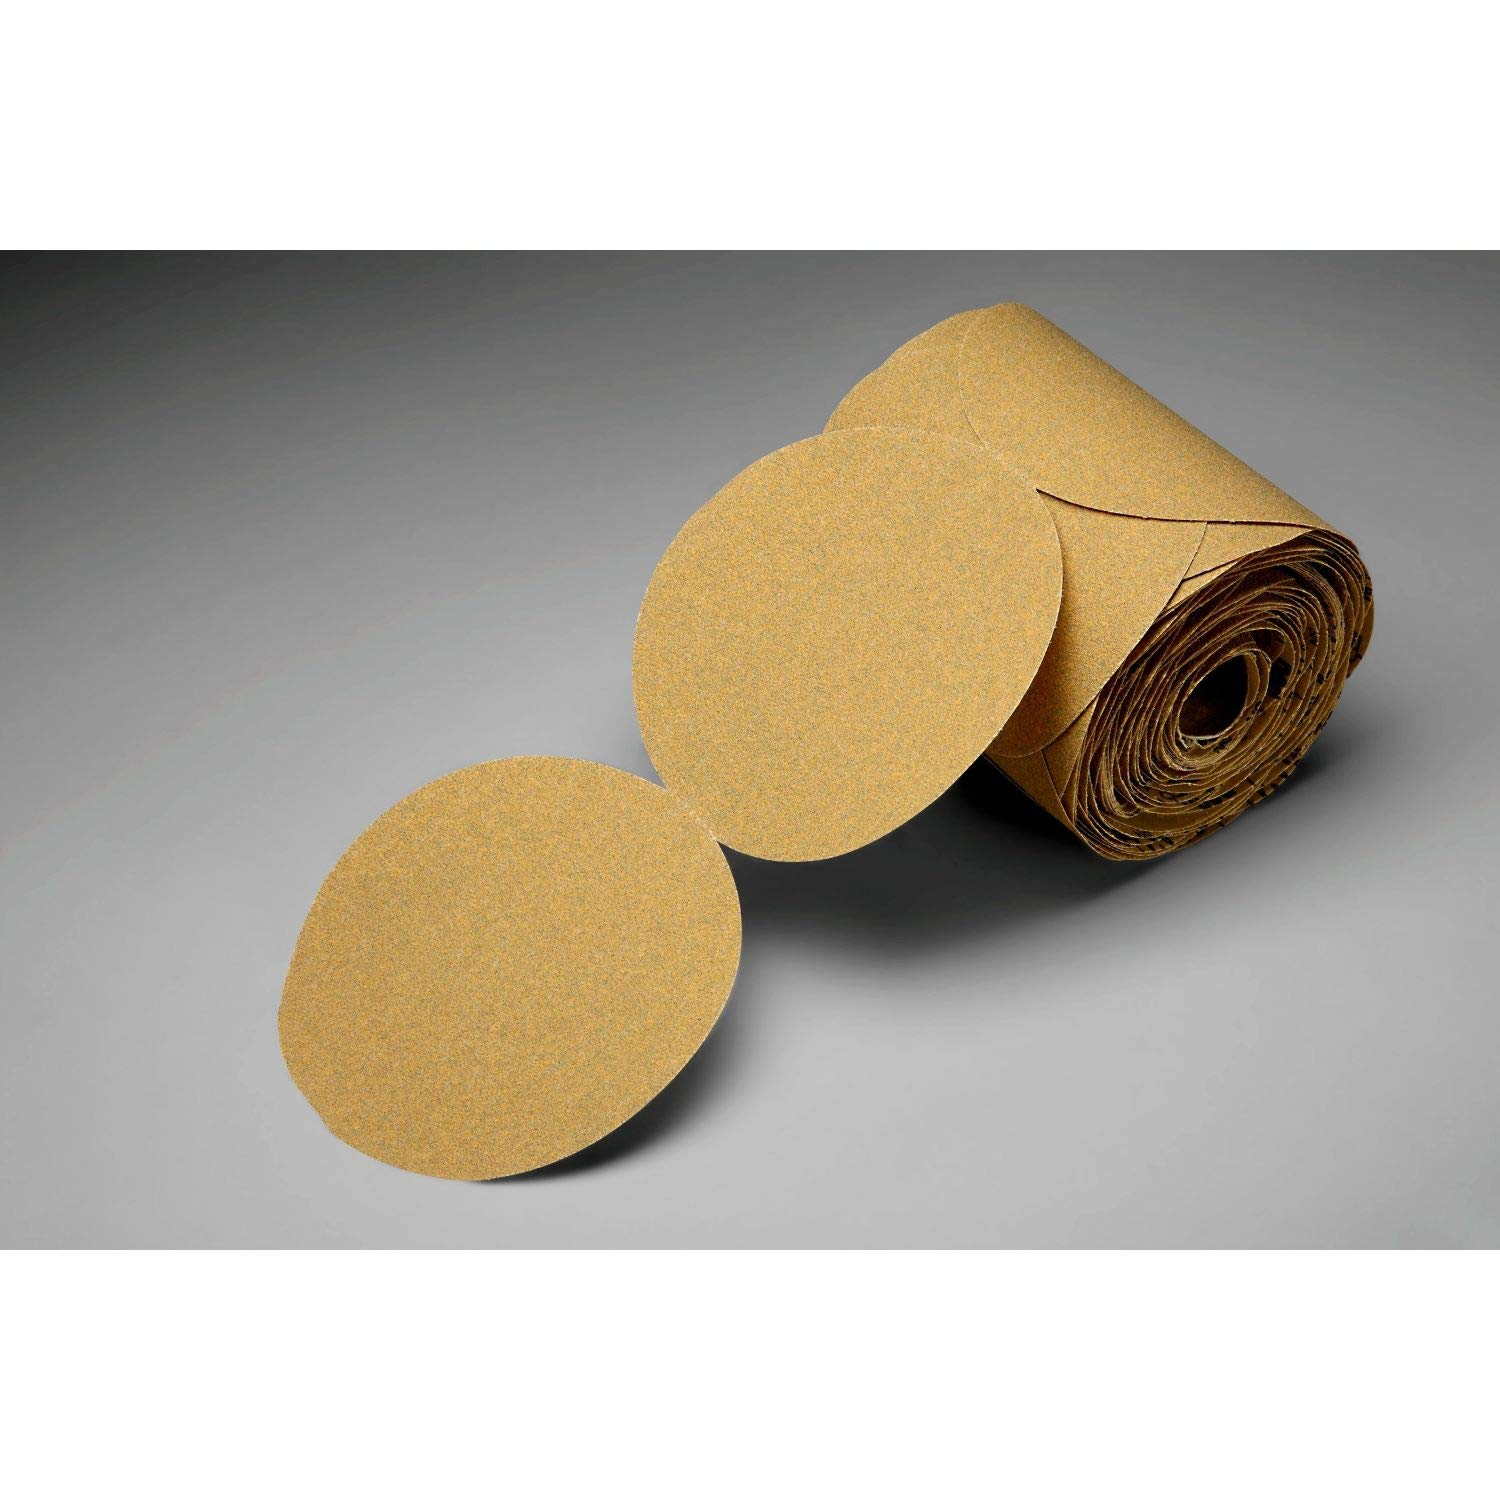 3M Stikit Gold Paper Disc Roll 216U, P240 A-weight, 5 in x NH, Die 500X, 175 discs per roll